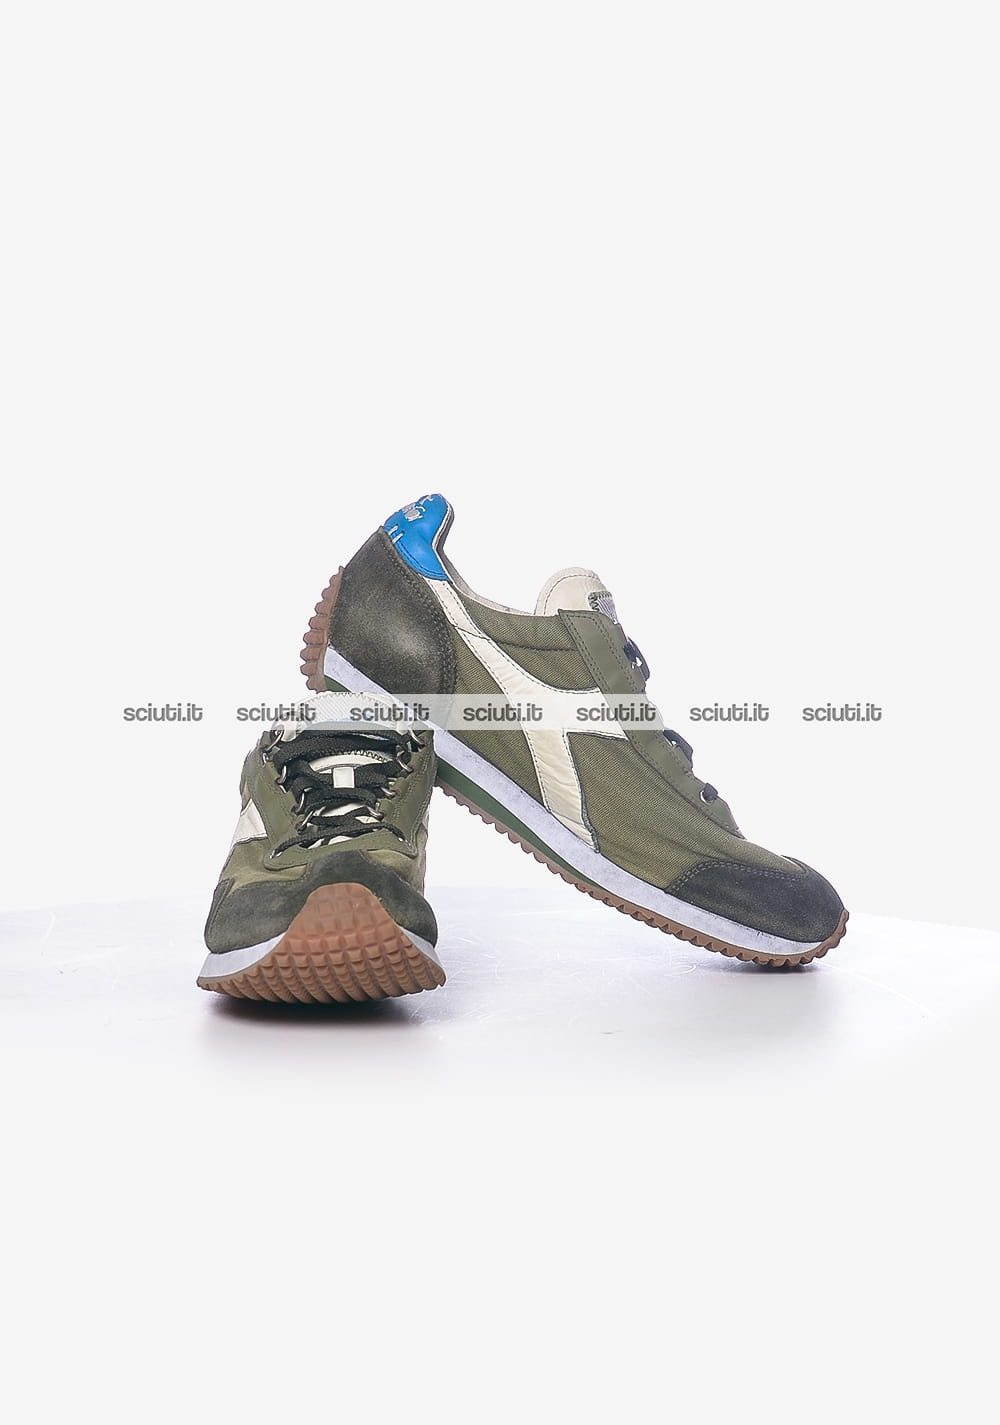 newest collection 1d604 06123 Scarpe Diadora Heritage uomo Equipe H dirty stone wash evo verde militare